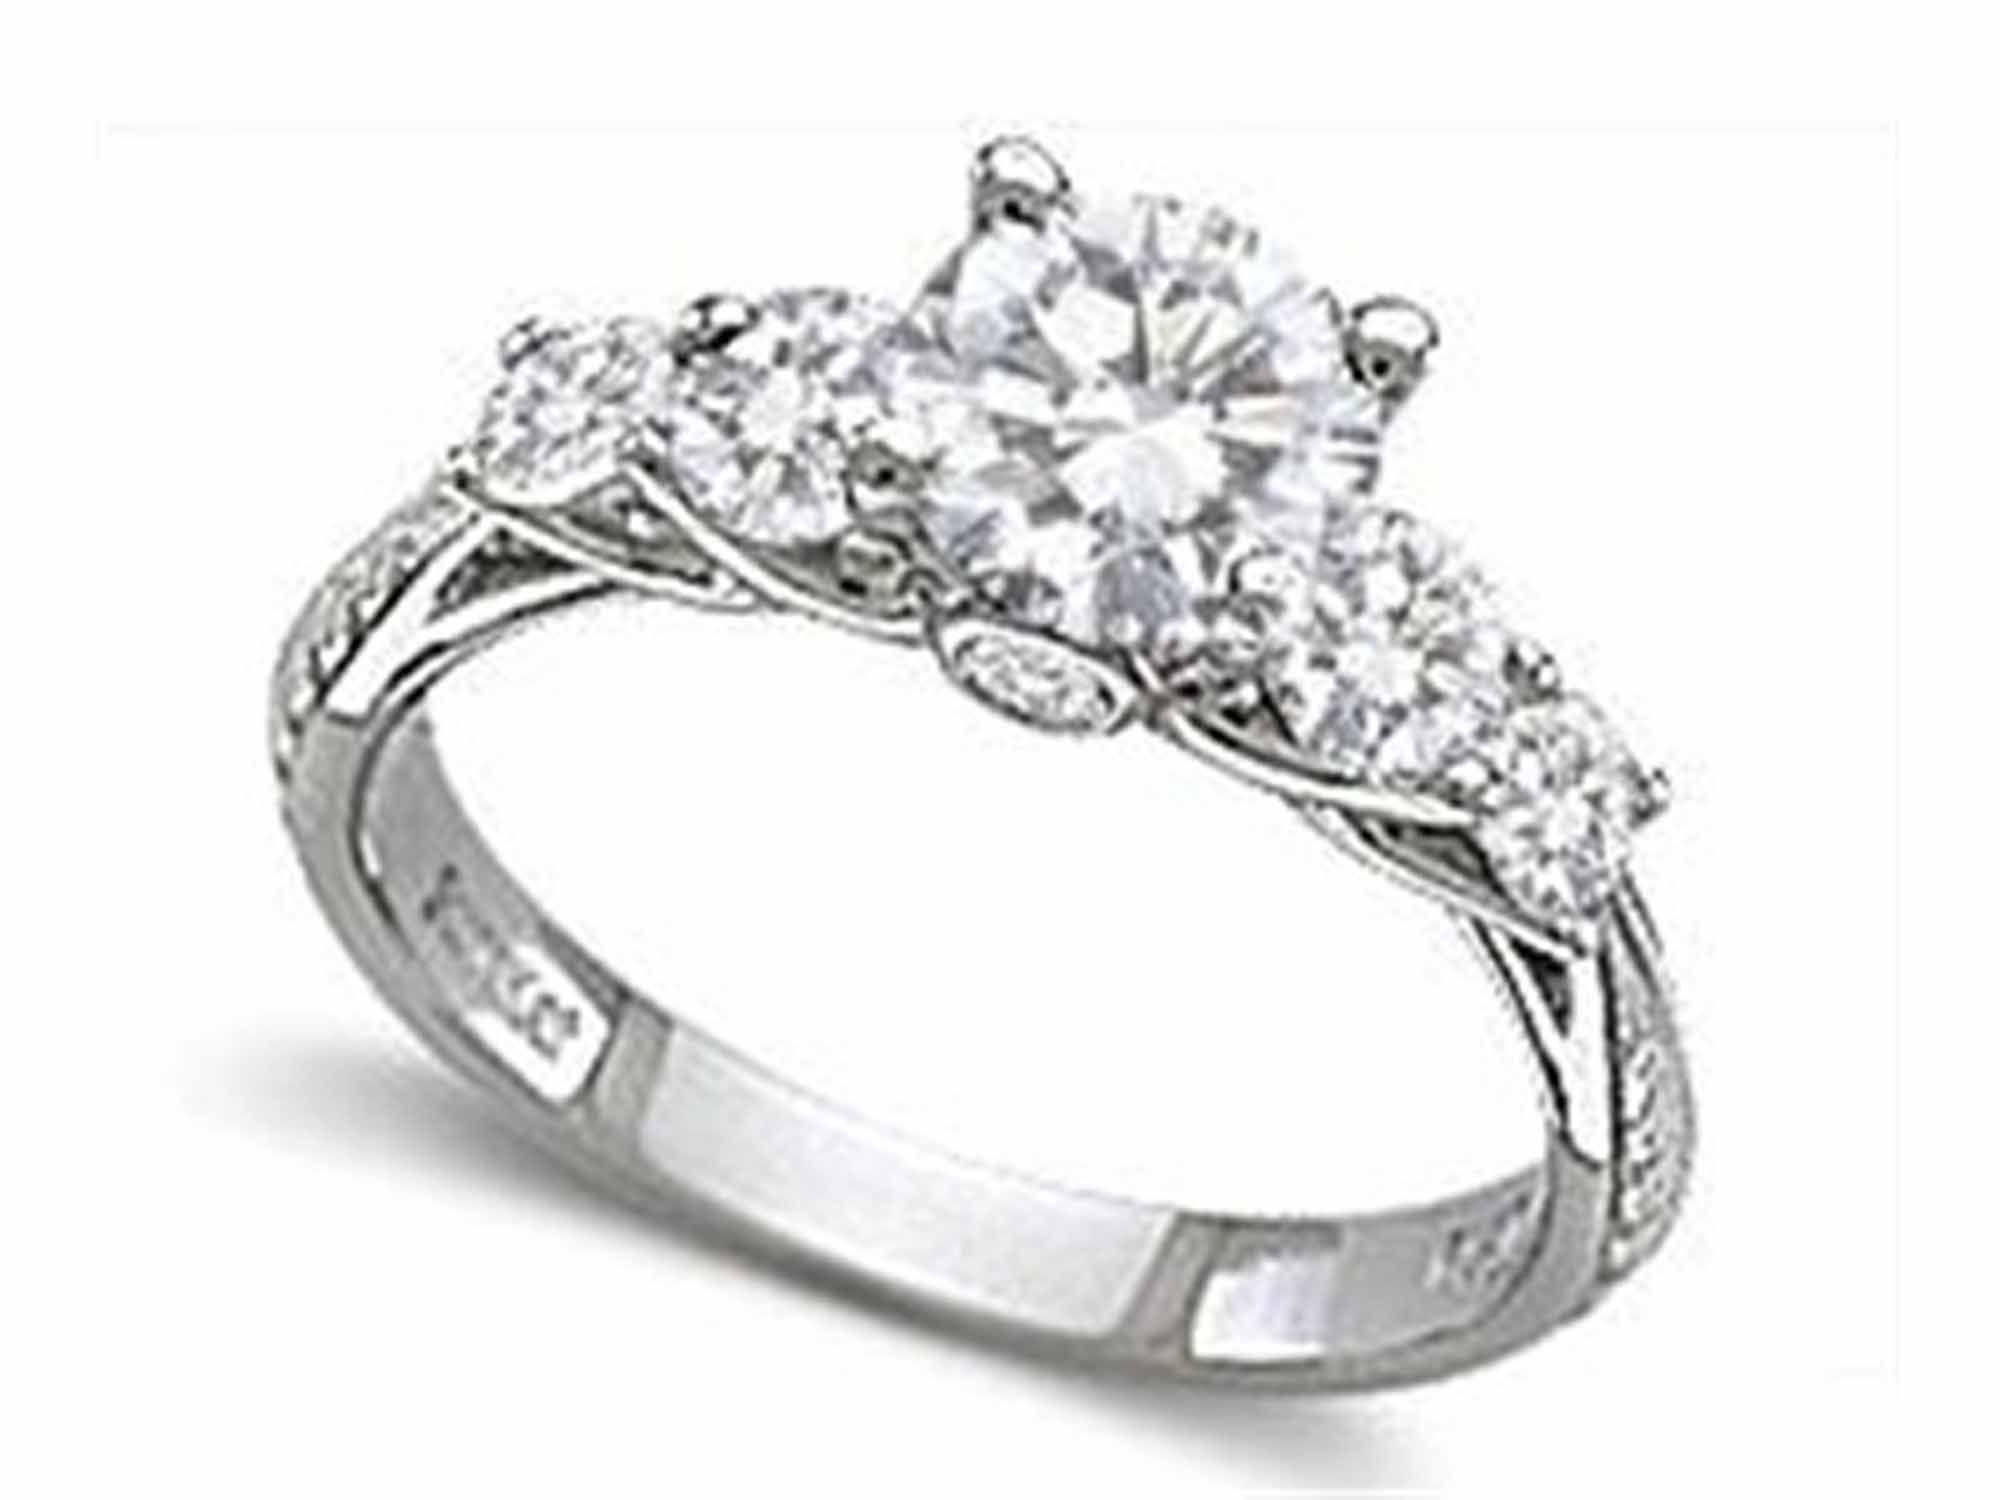 wonderful simple rustic wedding rings and decorations concepts ideas - Cheap Diamond Wedding Rings